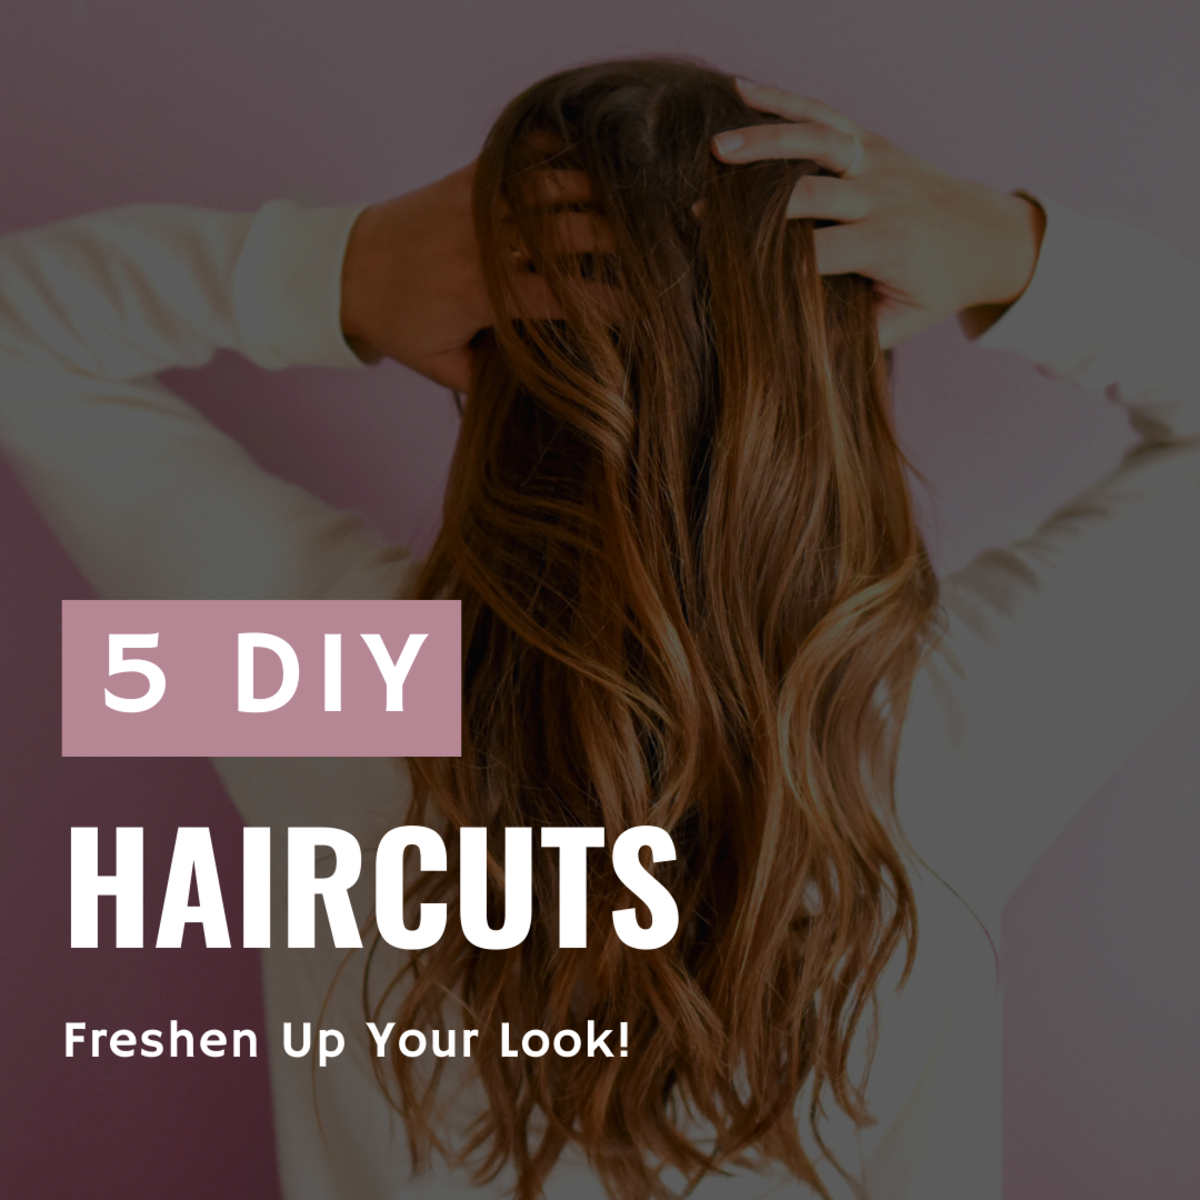 DIY Haircuts: 5 Ways to Cut Your Own Hair